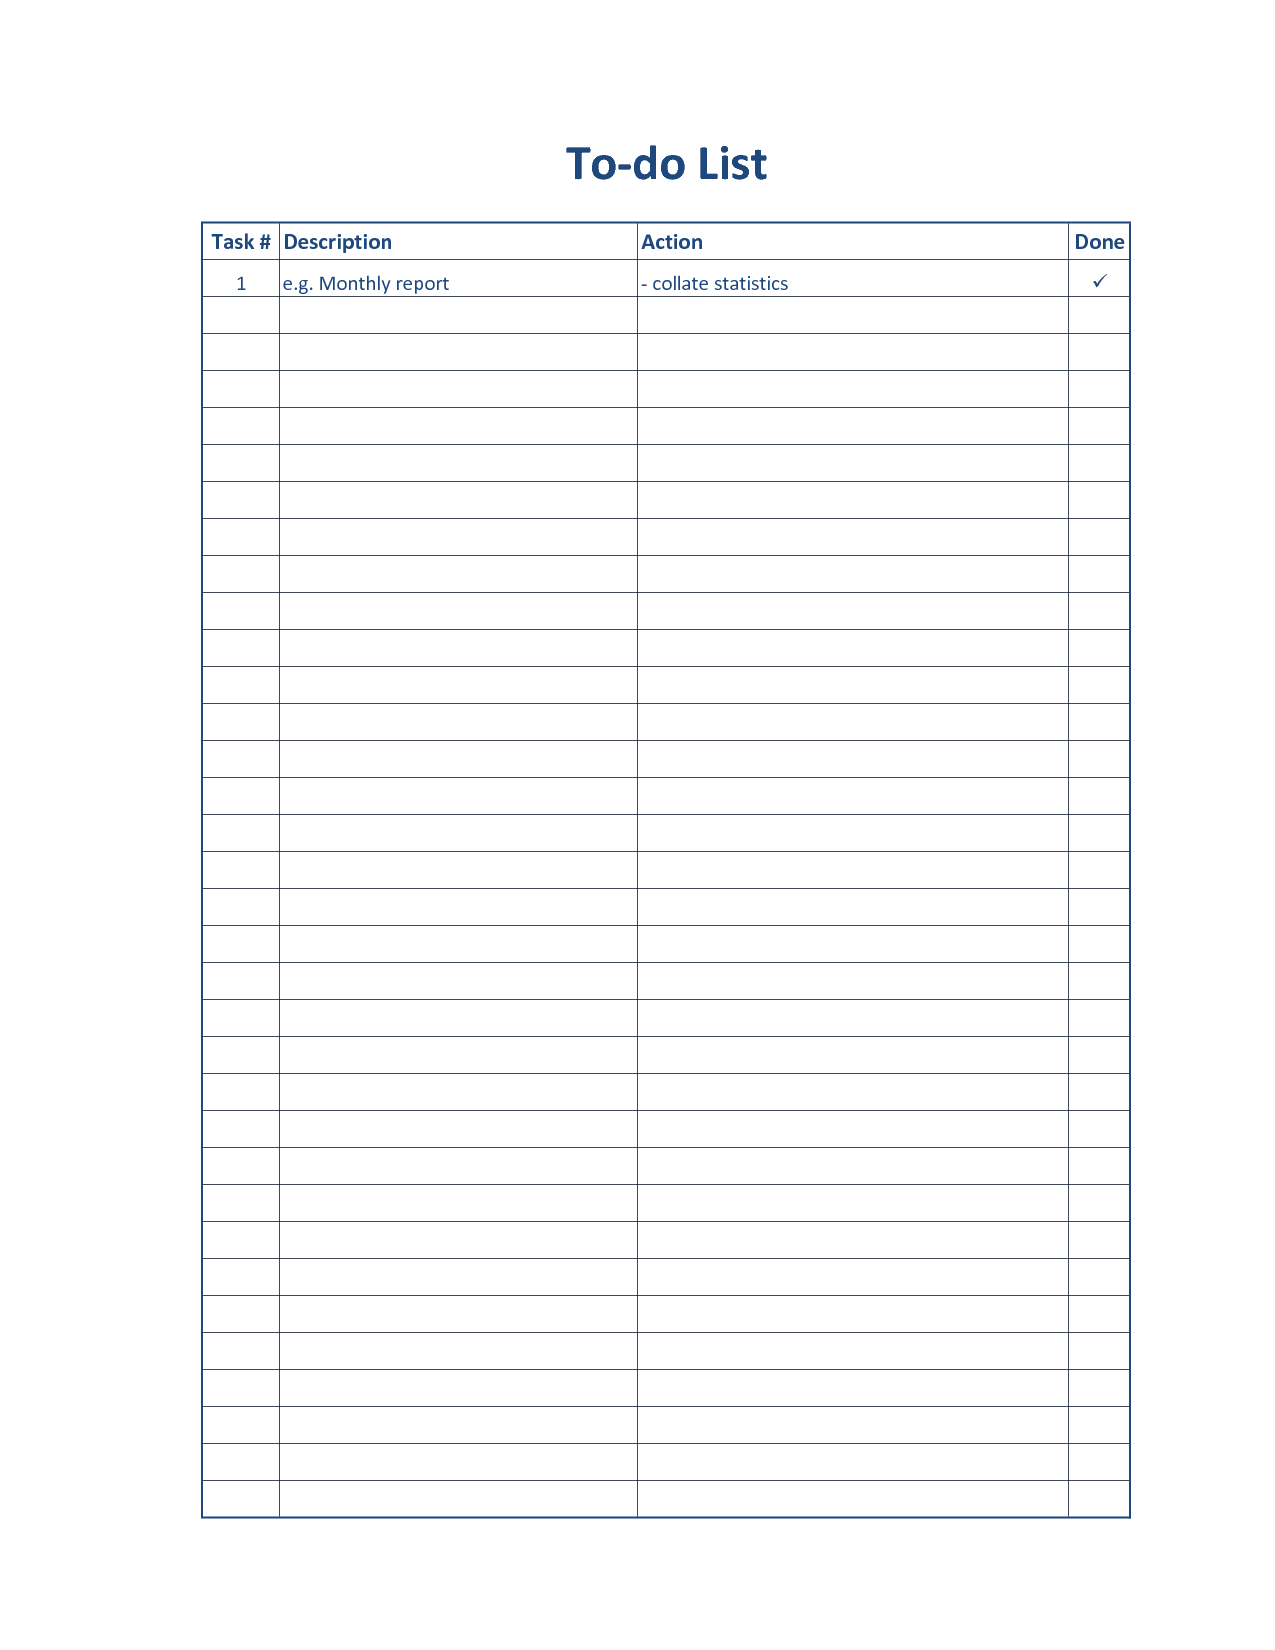 5 Best Images of Free Printable Daily To Do List - Free Printable ...